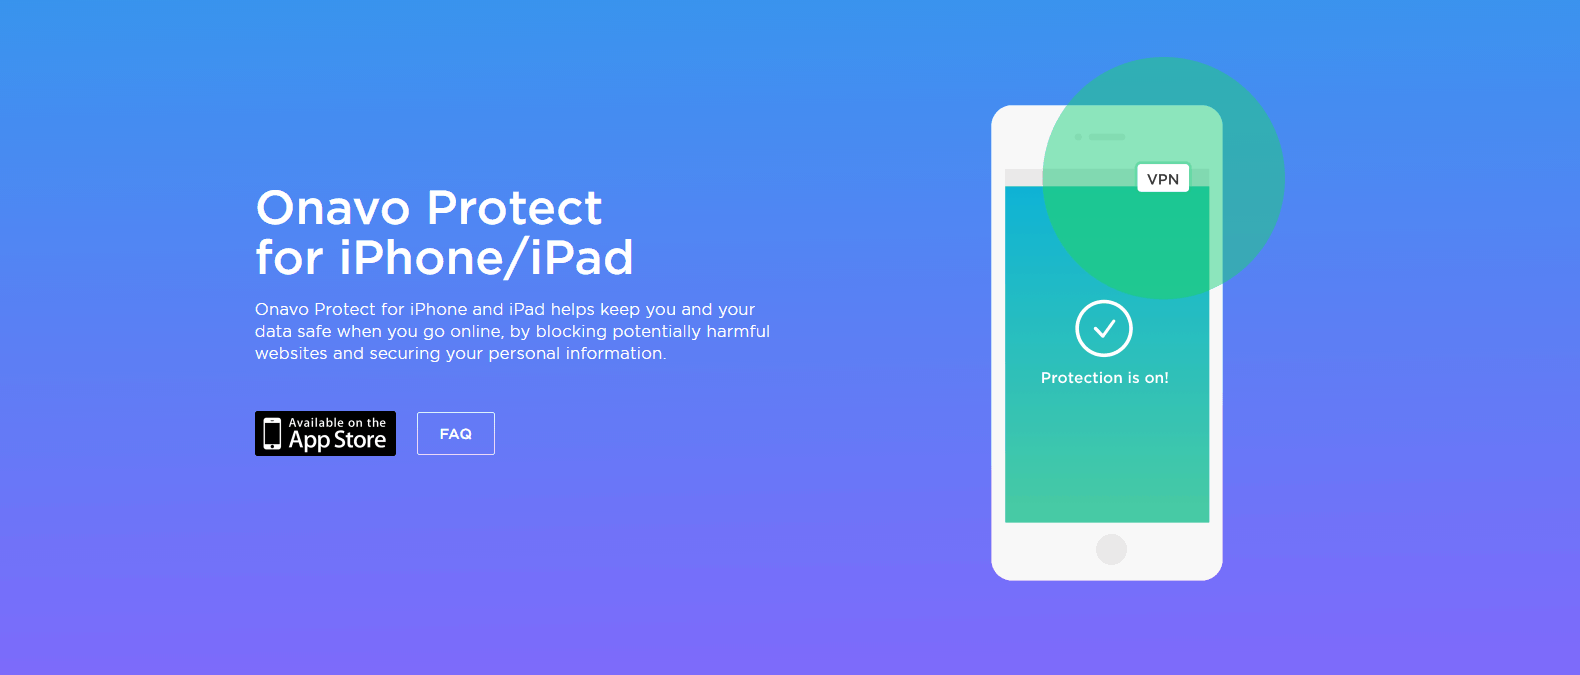 Facebook Onavo Protect iOS